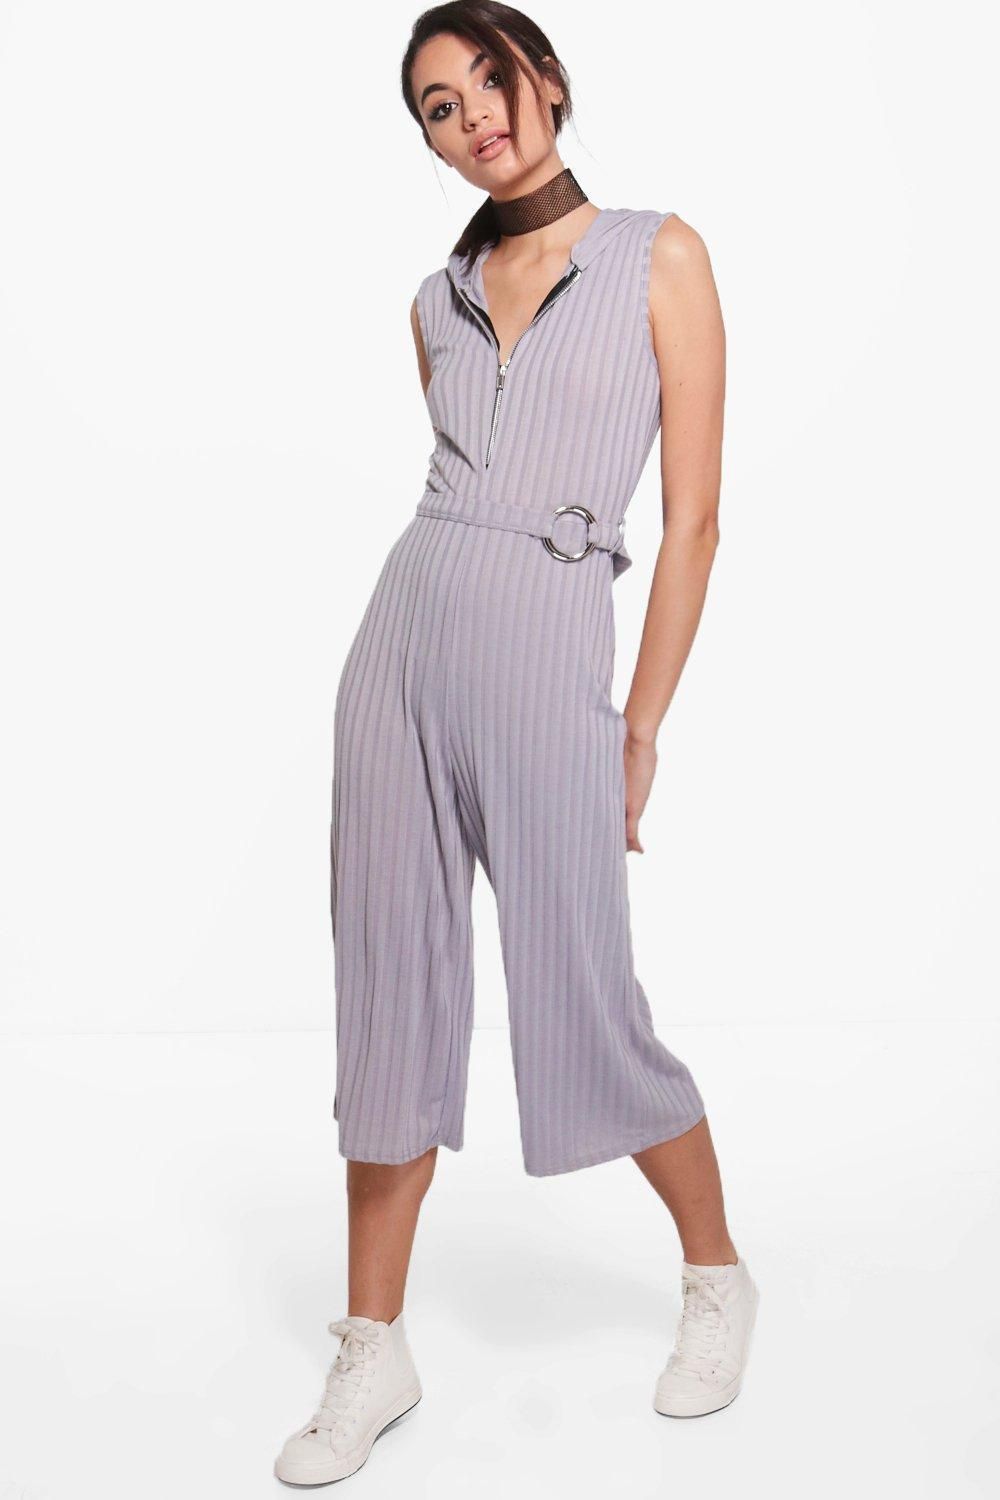 fd723f3e4da Boohoo Sofia Zip Front Hooded Ribbed Jumpsuit in Gray - Lyst